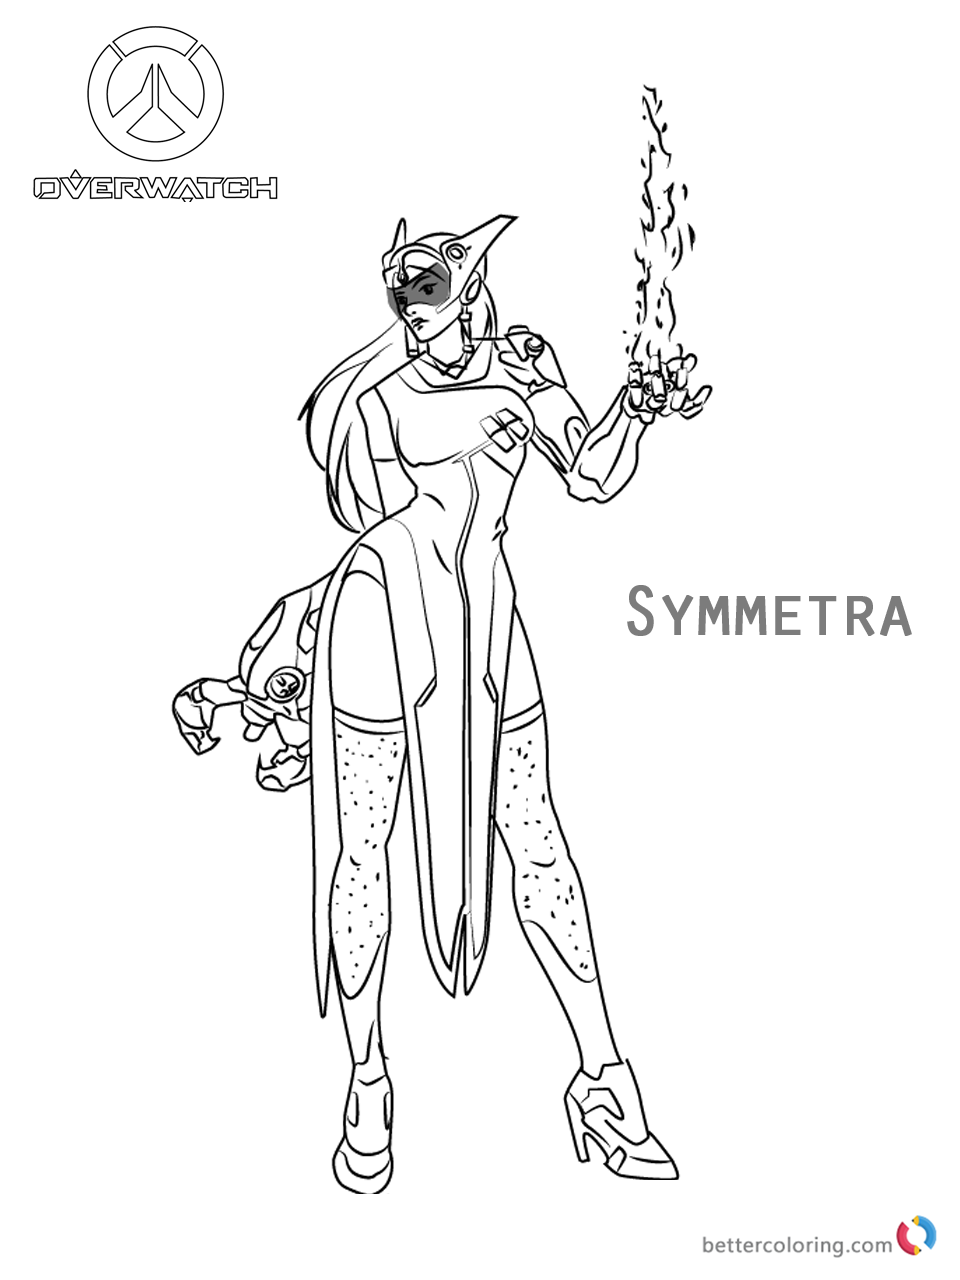 Symmetra from Overwatch Coloring